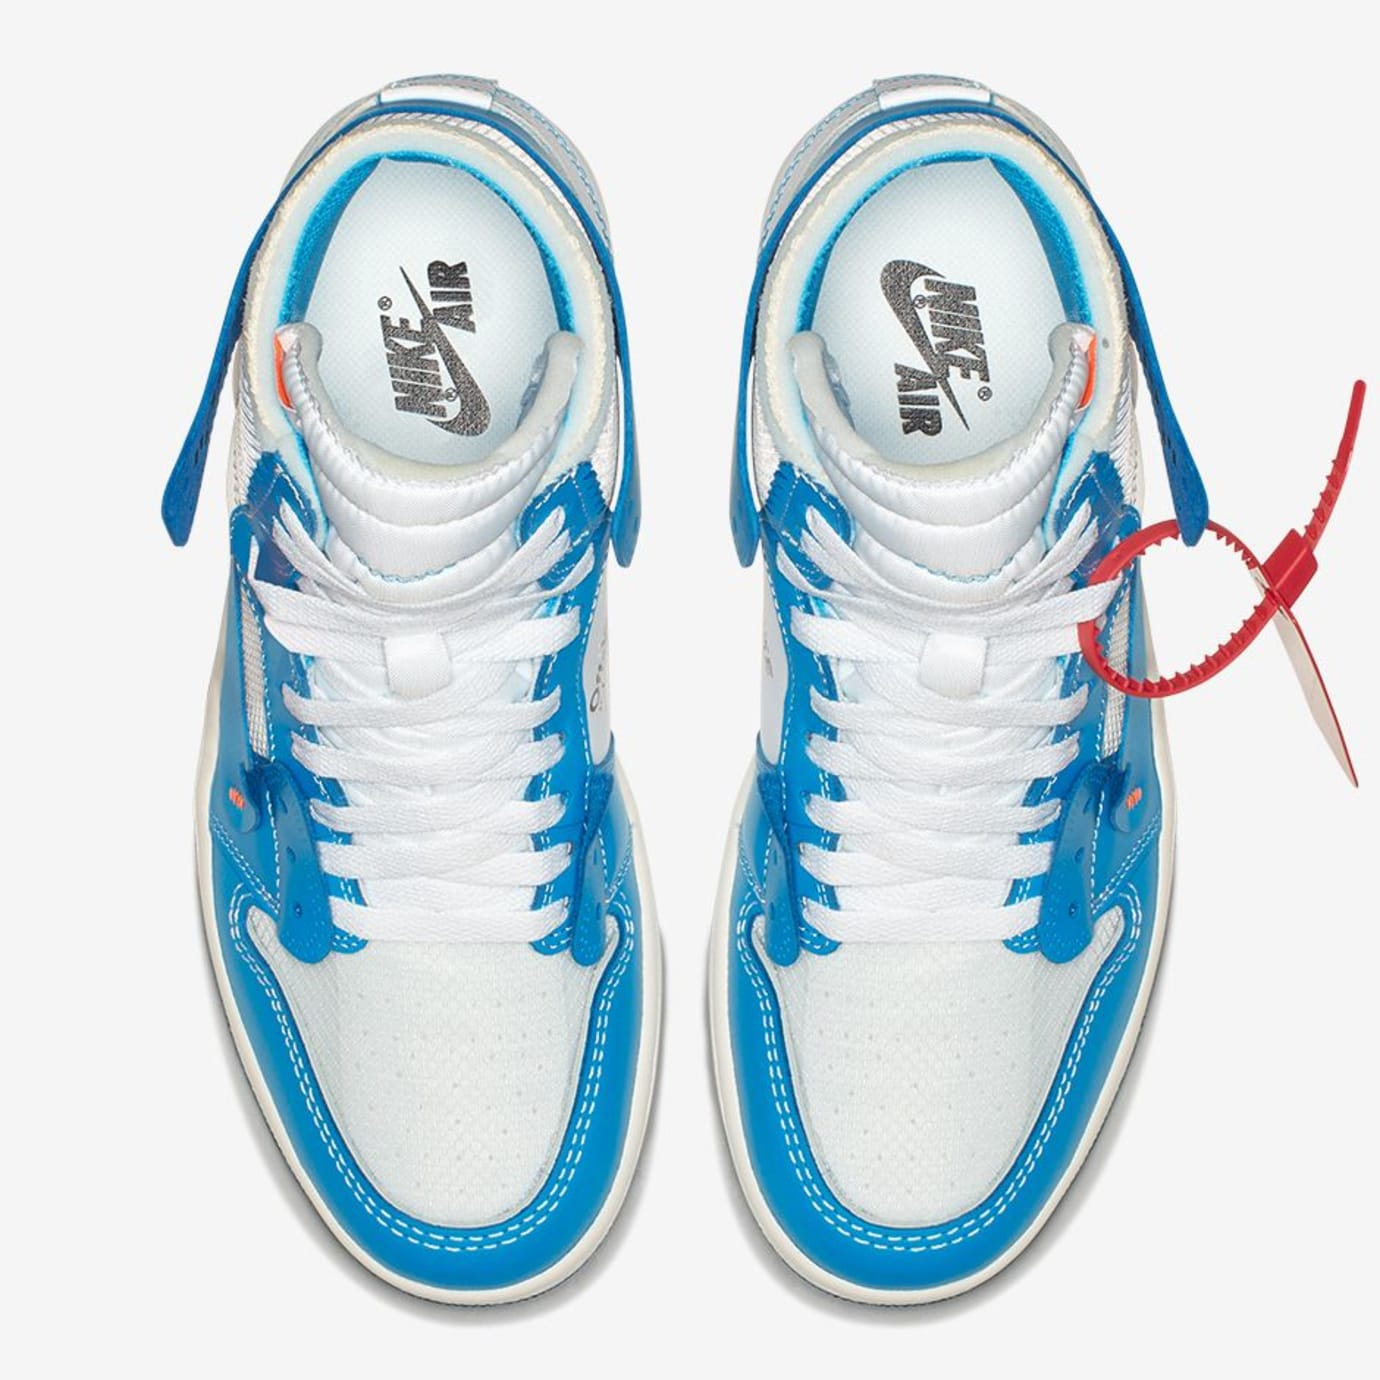 17bd6fbb4ed437 Image via Nike Off-White x Air Jordan 1 UNC Release Date AQ0818-148 Top